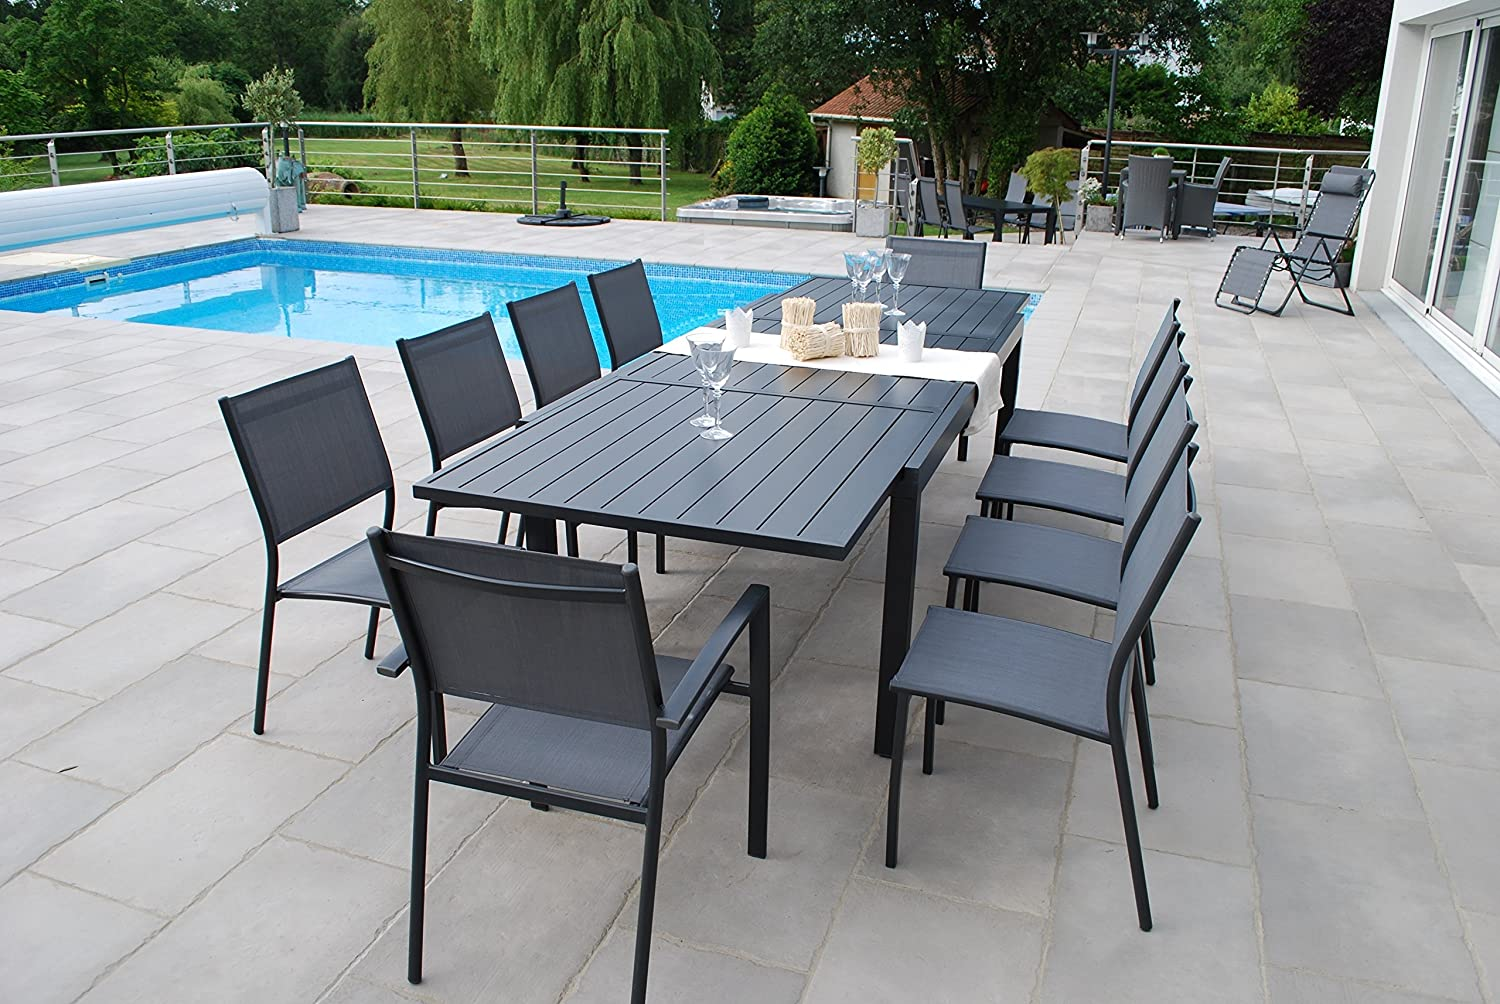 Salon de jardin Vital 300 - 200/300x100 cm Extending Dining ...